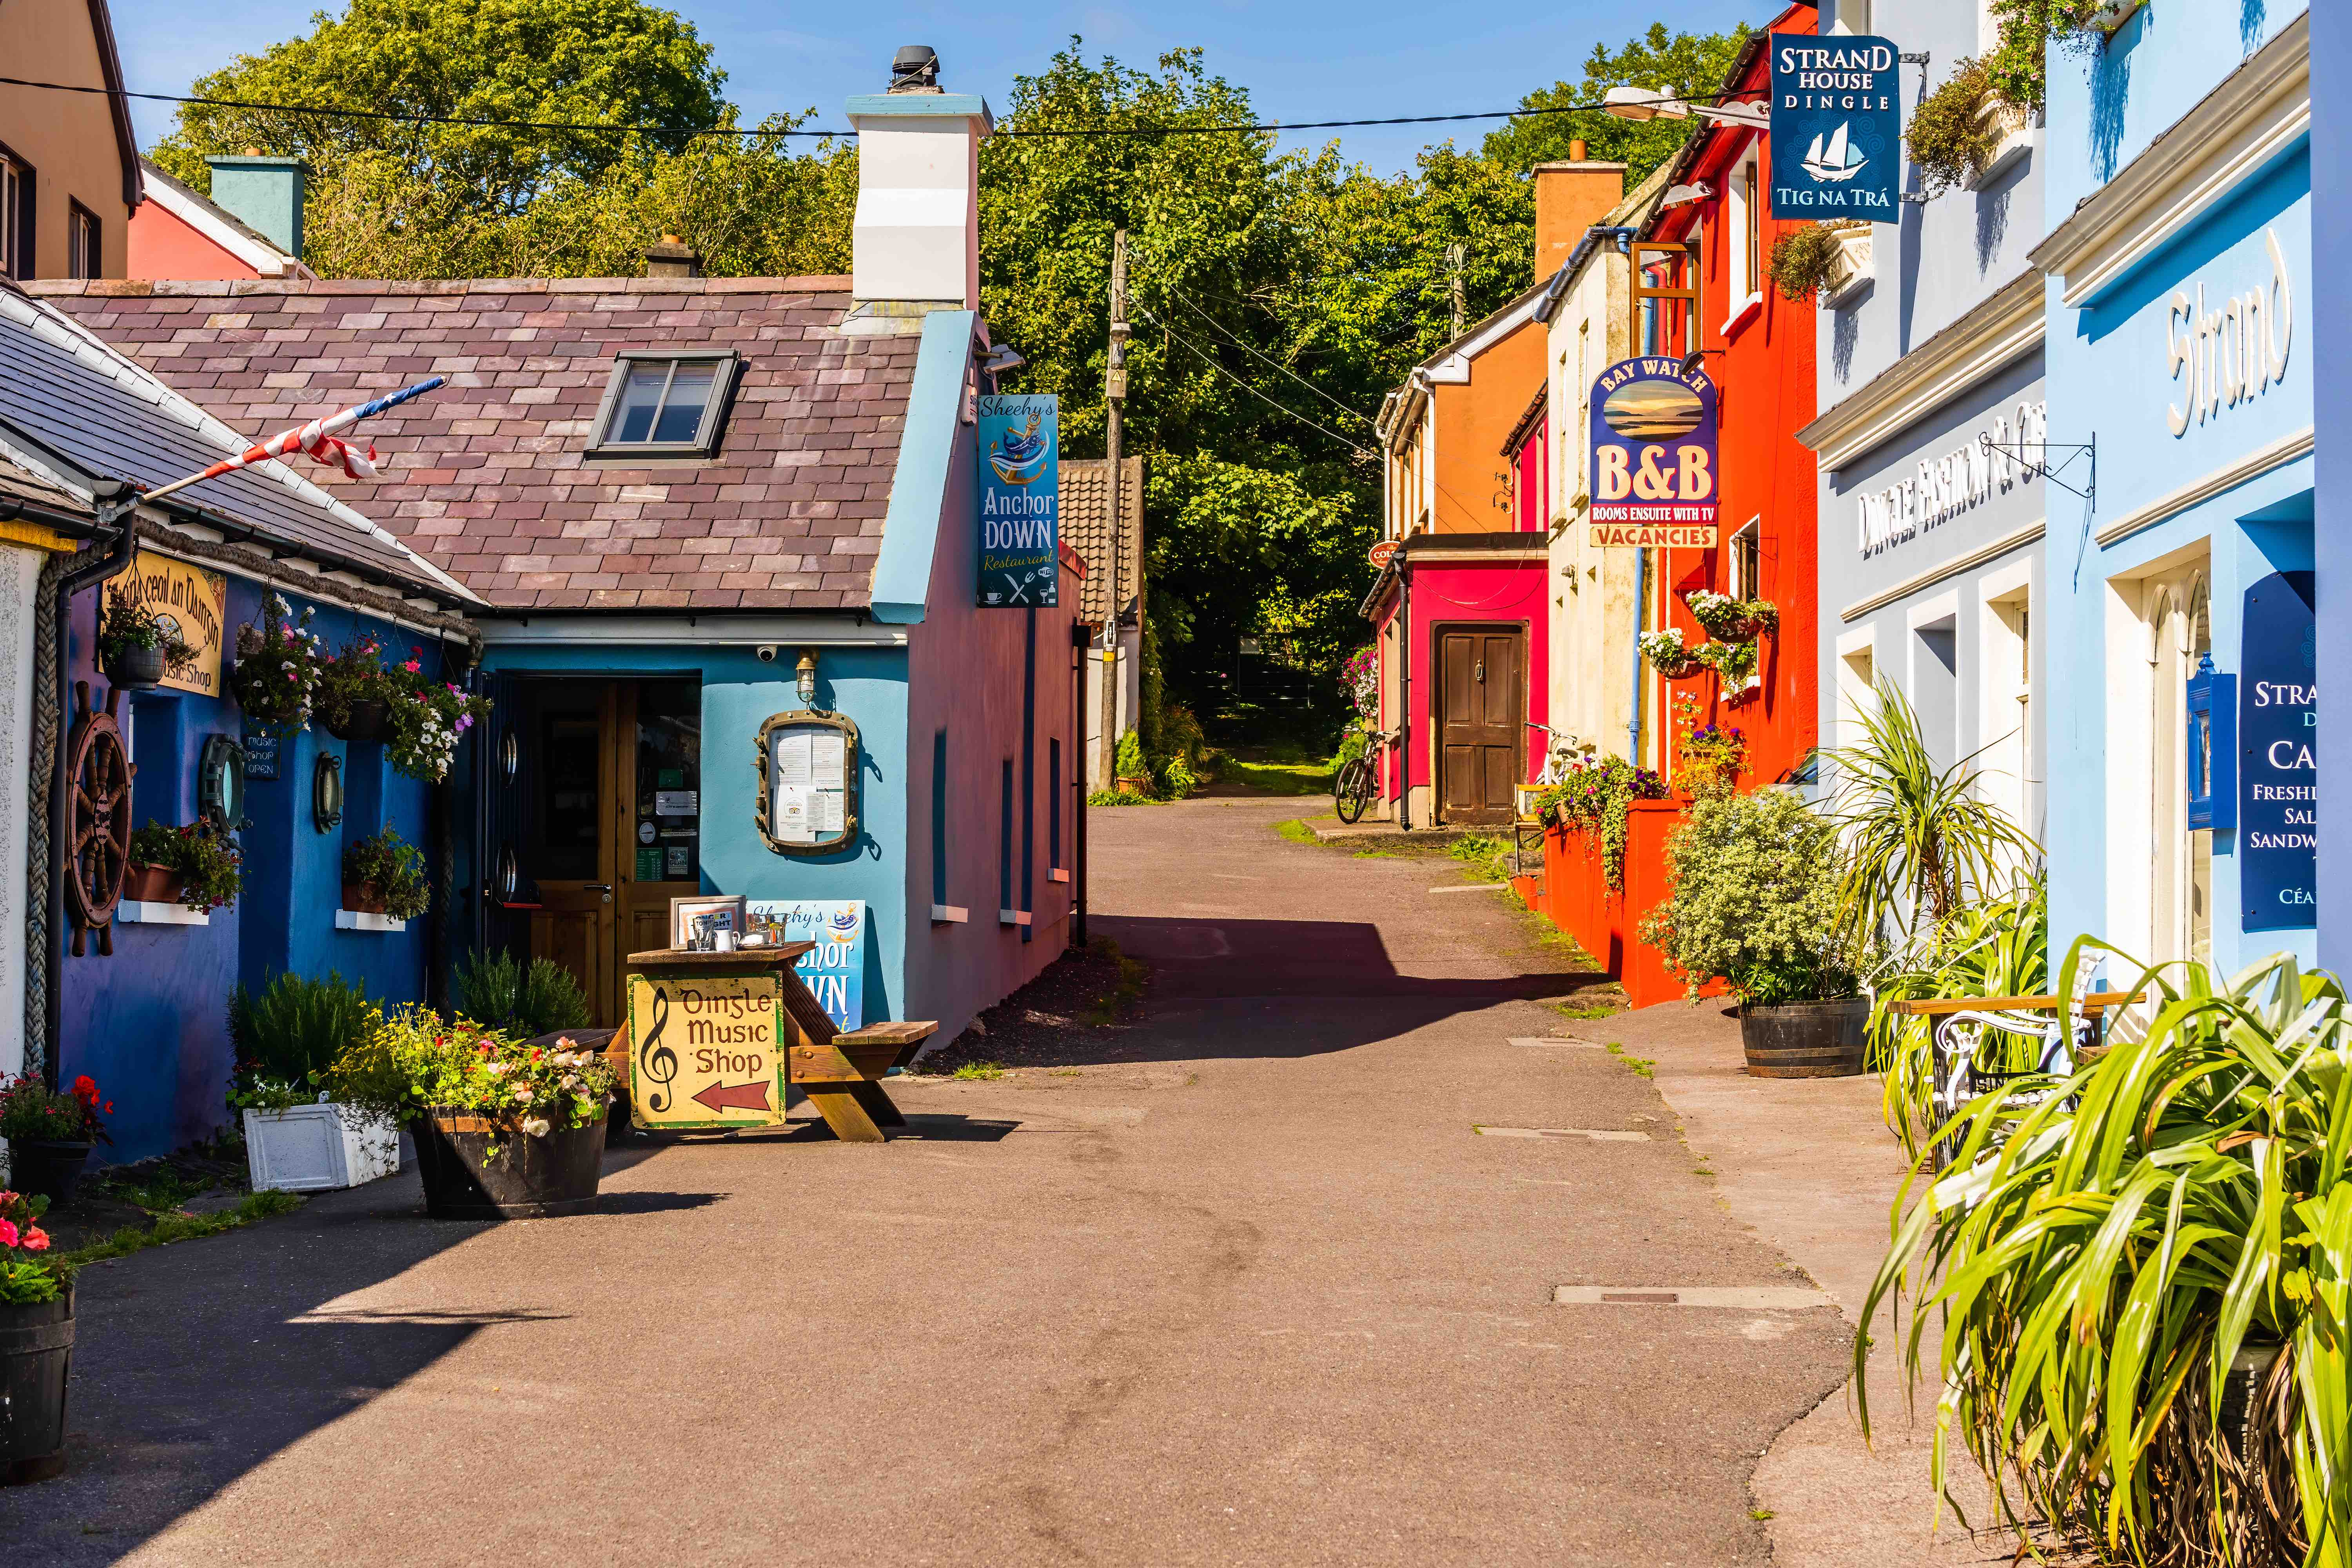 The charming lanes of the coastal town of Dingle in County Kerry, Ireland.